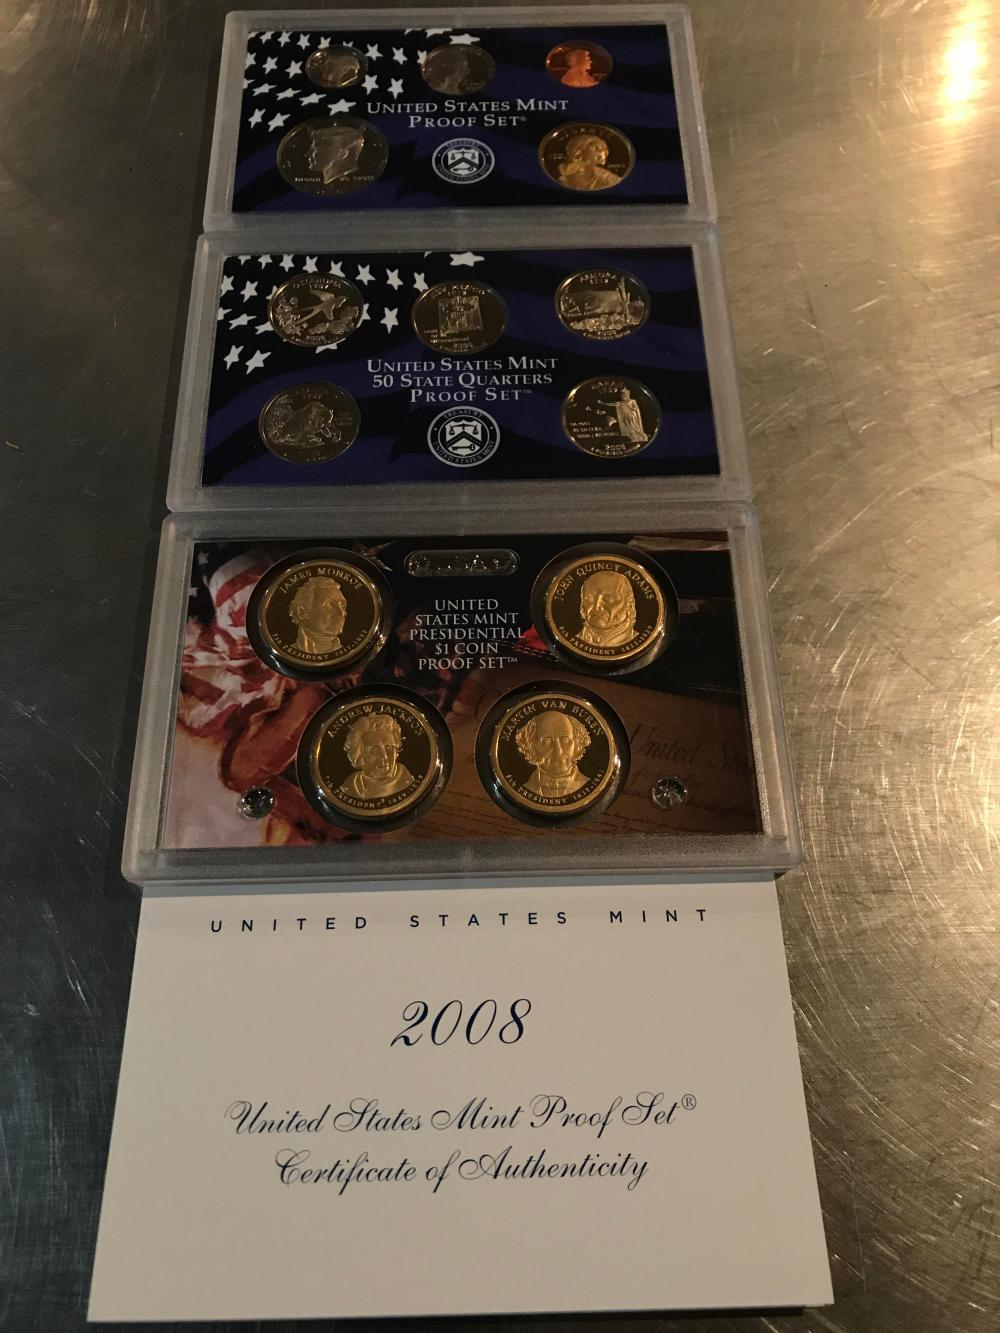 2008 United States mint proof set with